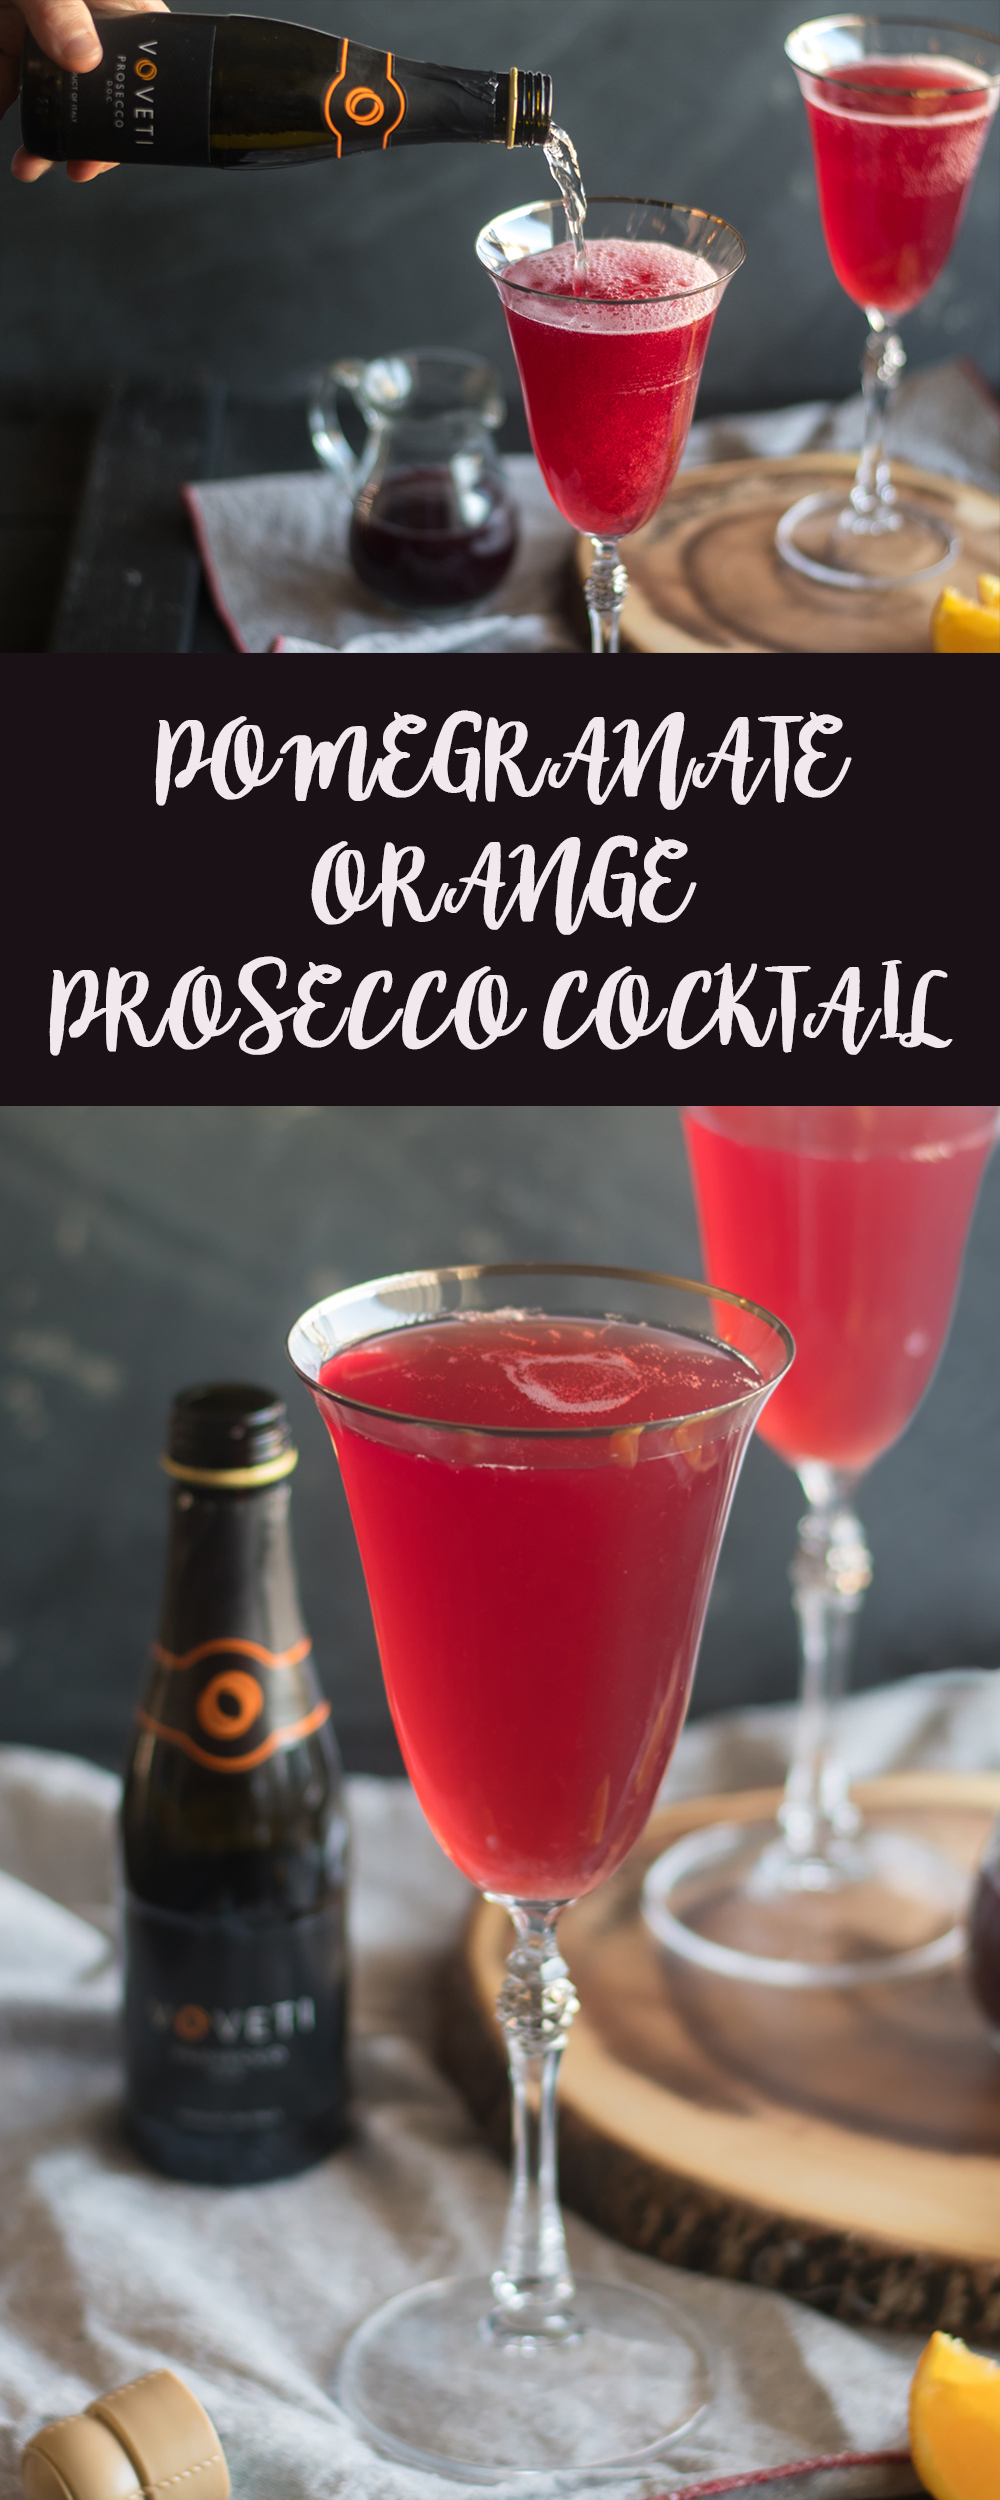 This Pomegranate Orange Prosecco Cocktail is an easy cocktail that's perfect for a date night at home.